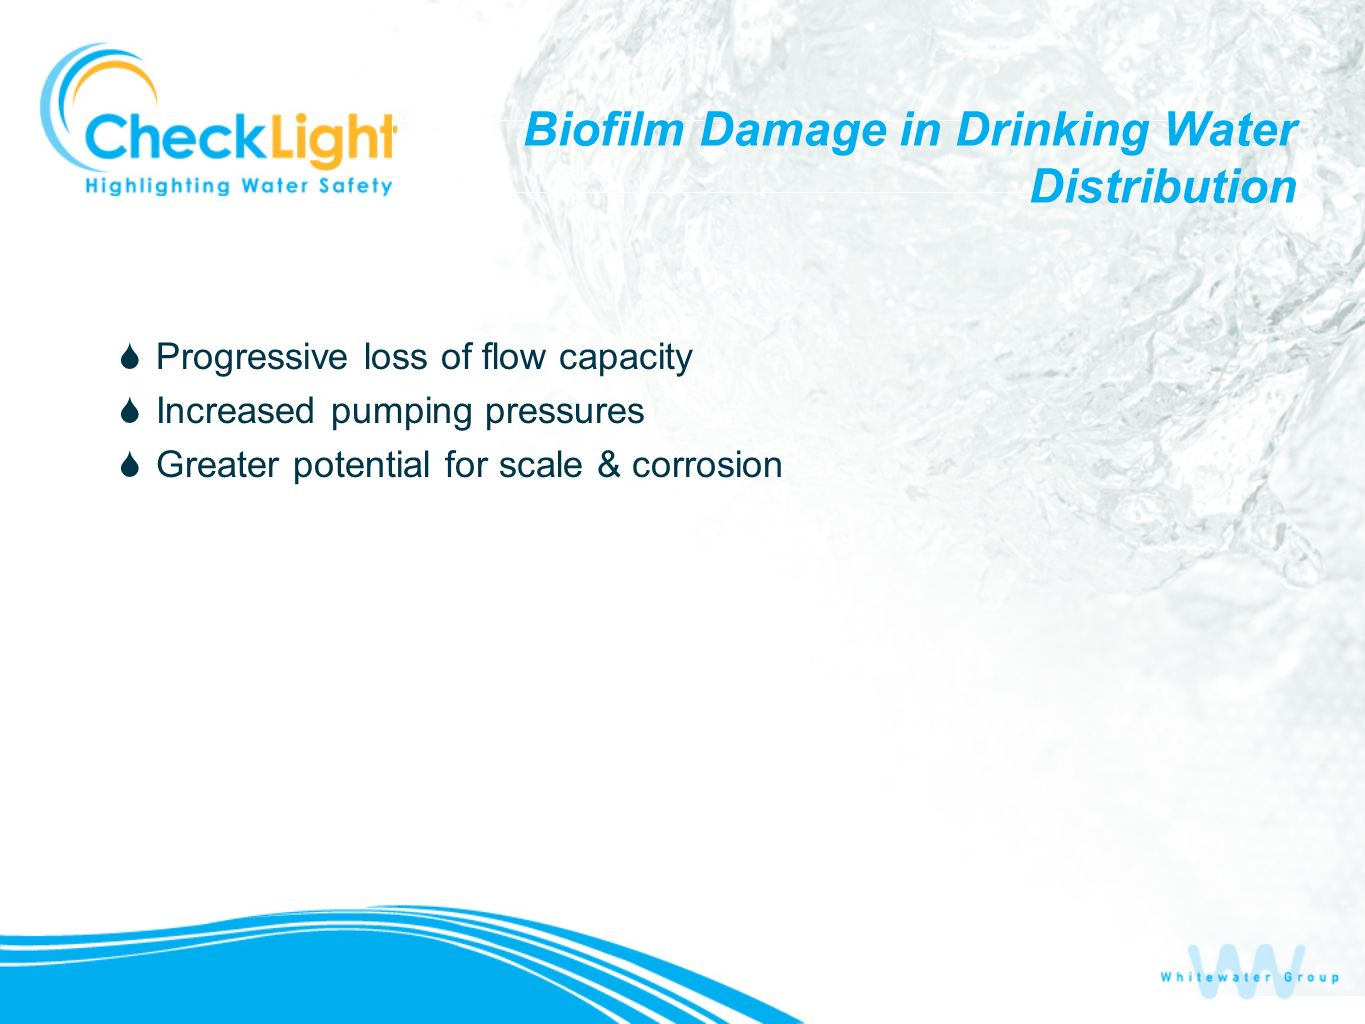 Biofilm Damage in Drinking Water Distribution